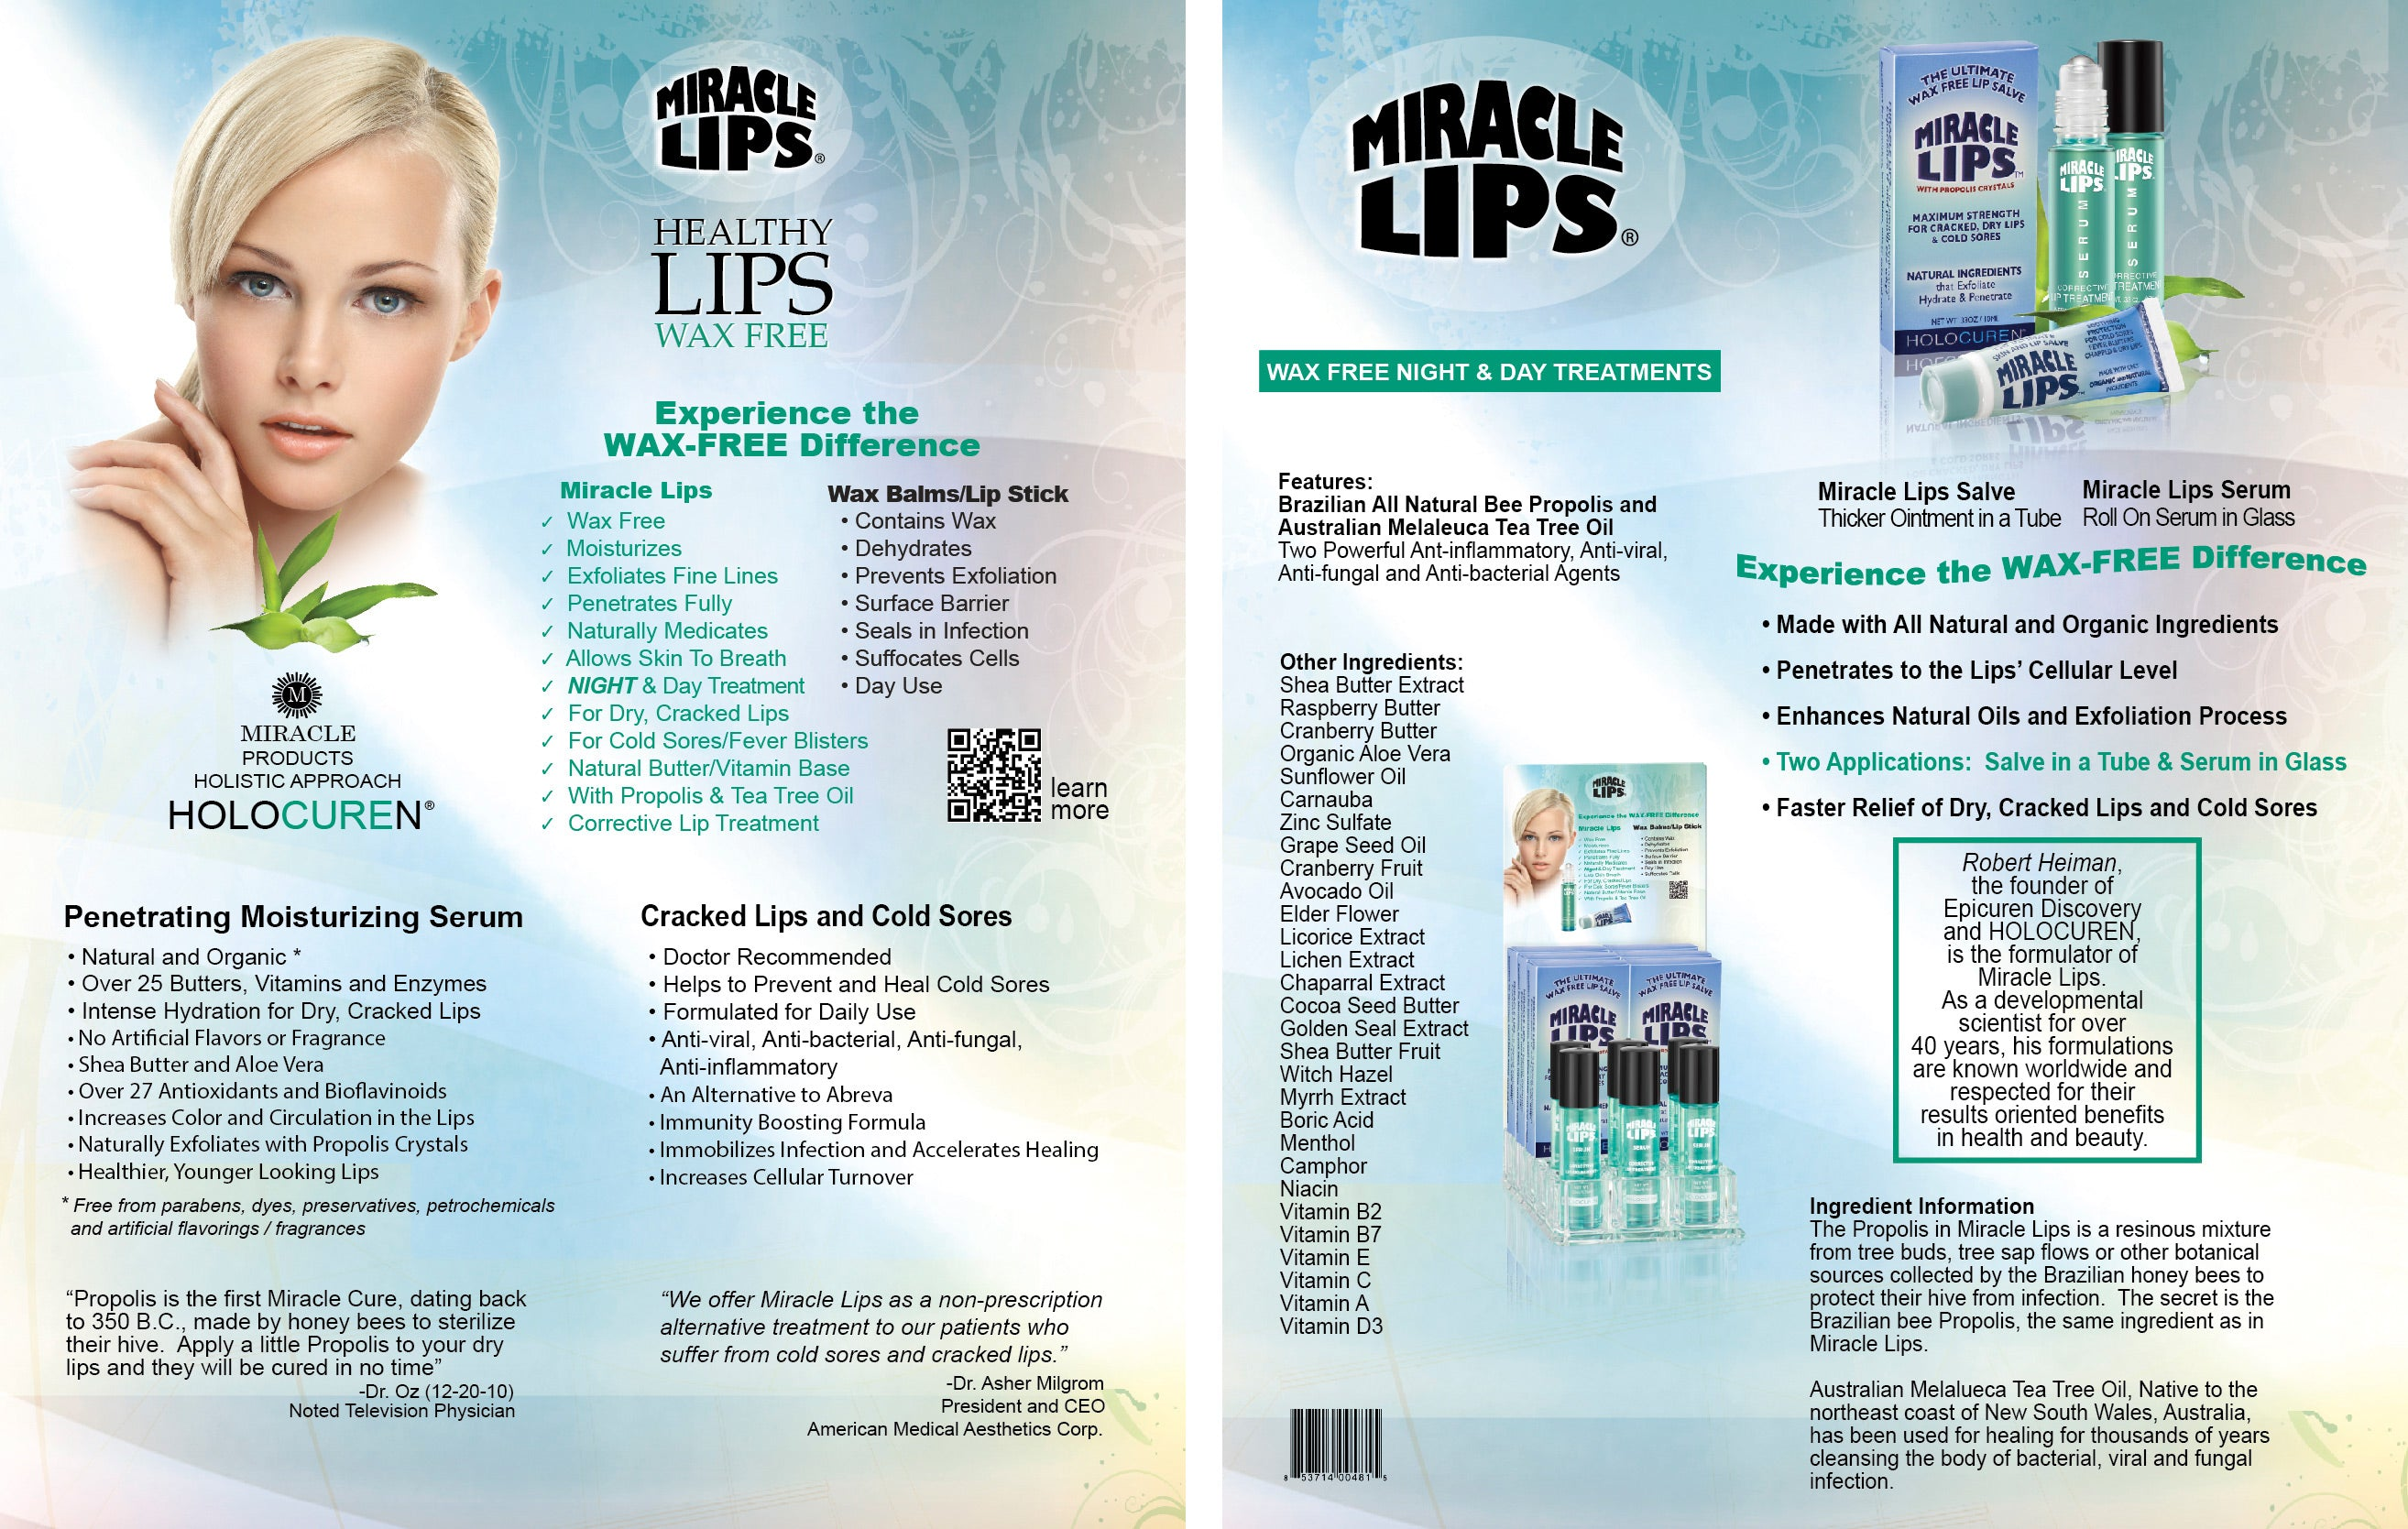 Miracle Lips Natural Wax-Free Lip Balm– HOLOCUREN - Official Website